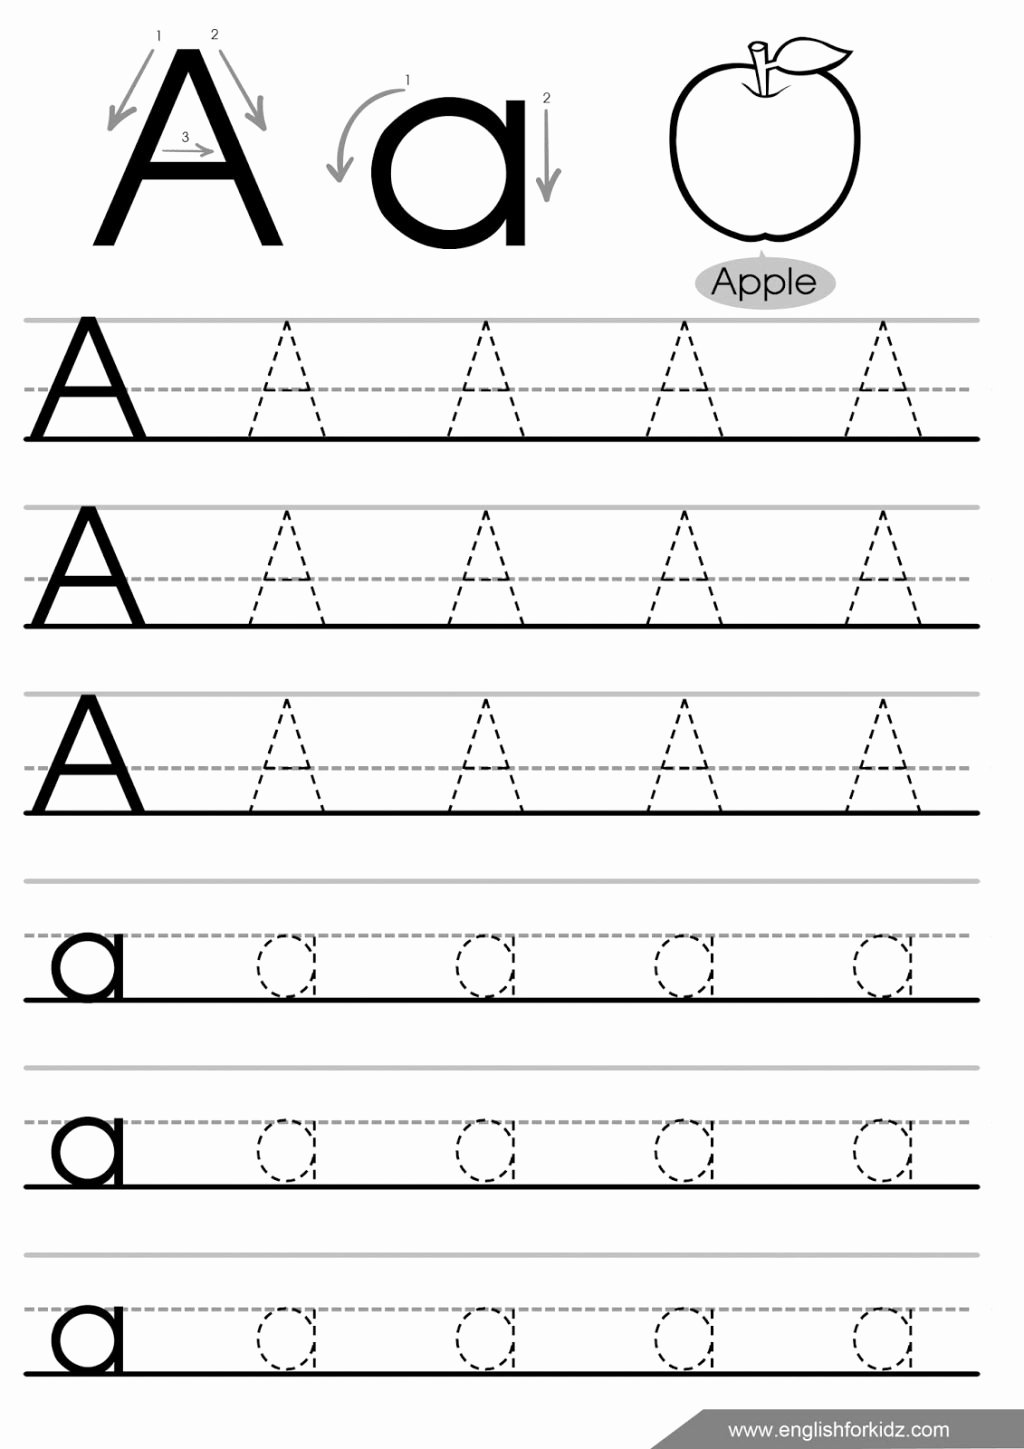 Printable Letter Tracing Worksheets for Preschoolers Free Worksheet Excelent Letter Tracing Worksheets Free